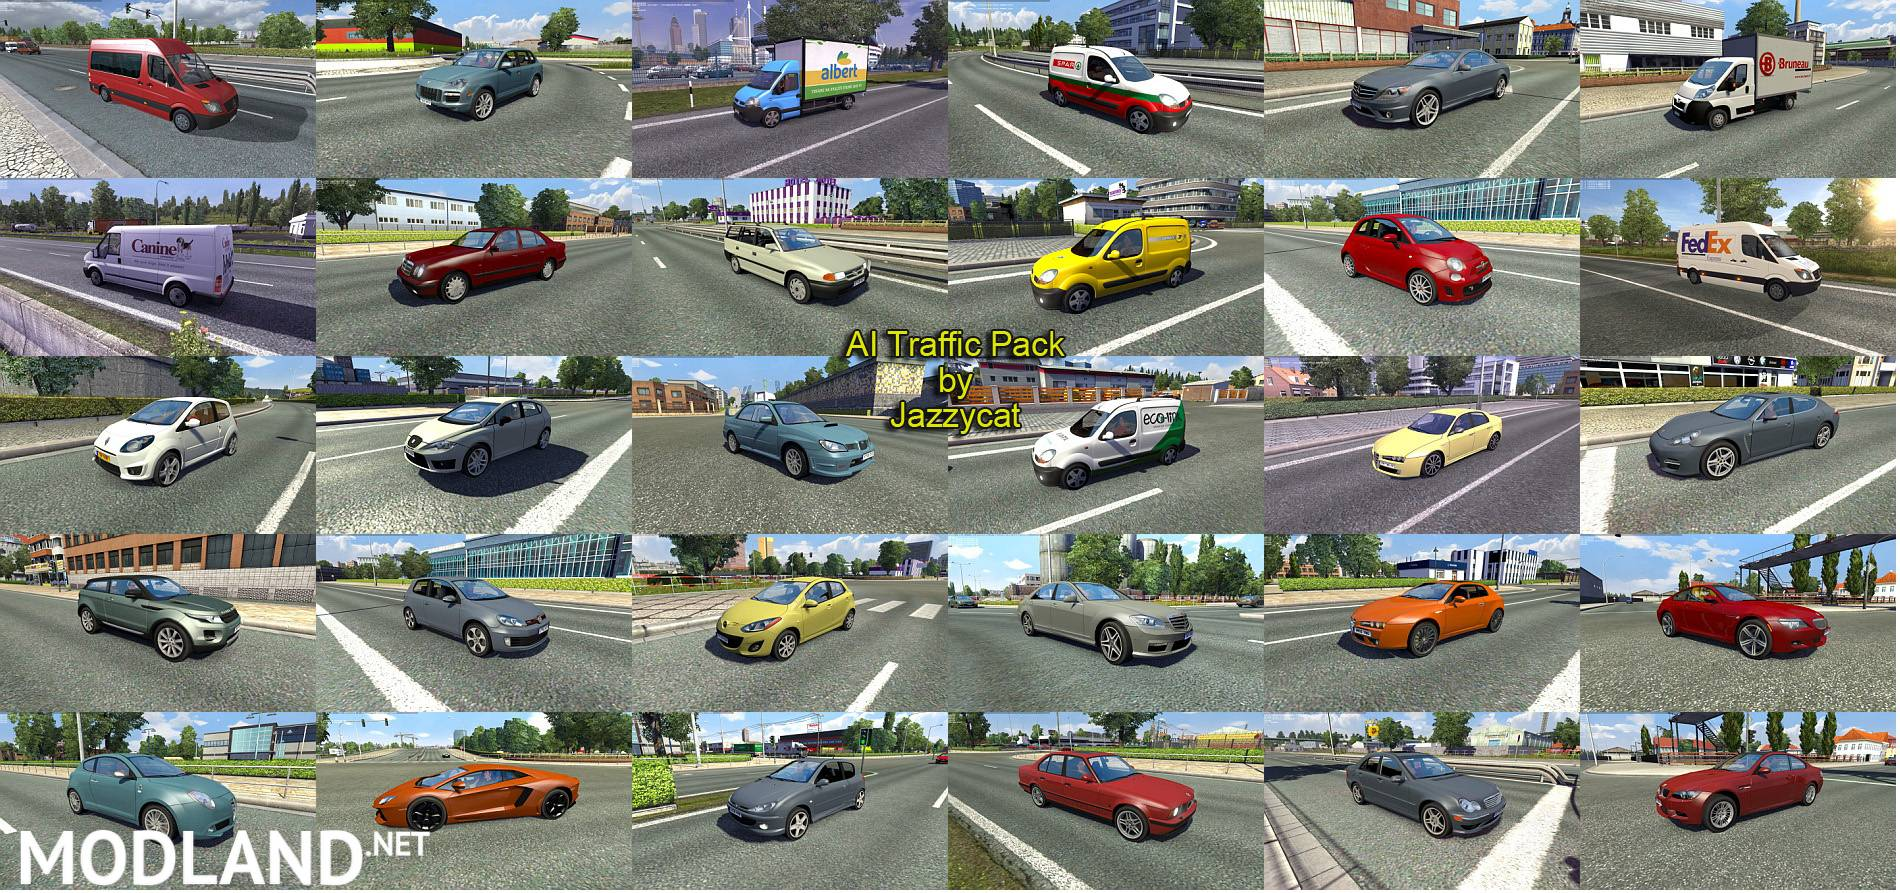 Ai Traffic Pack By Jazzycat V 2 6 Mod For Ets 2